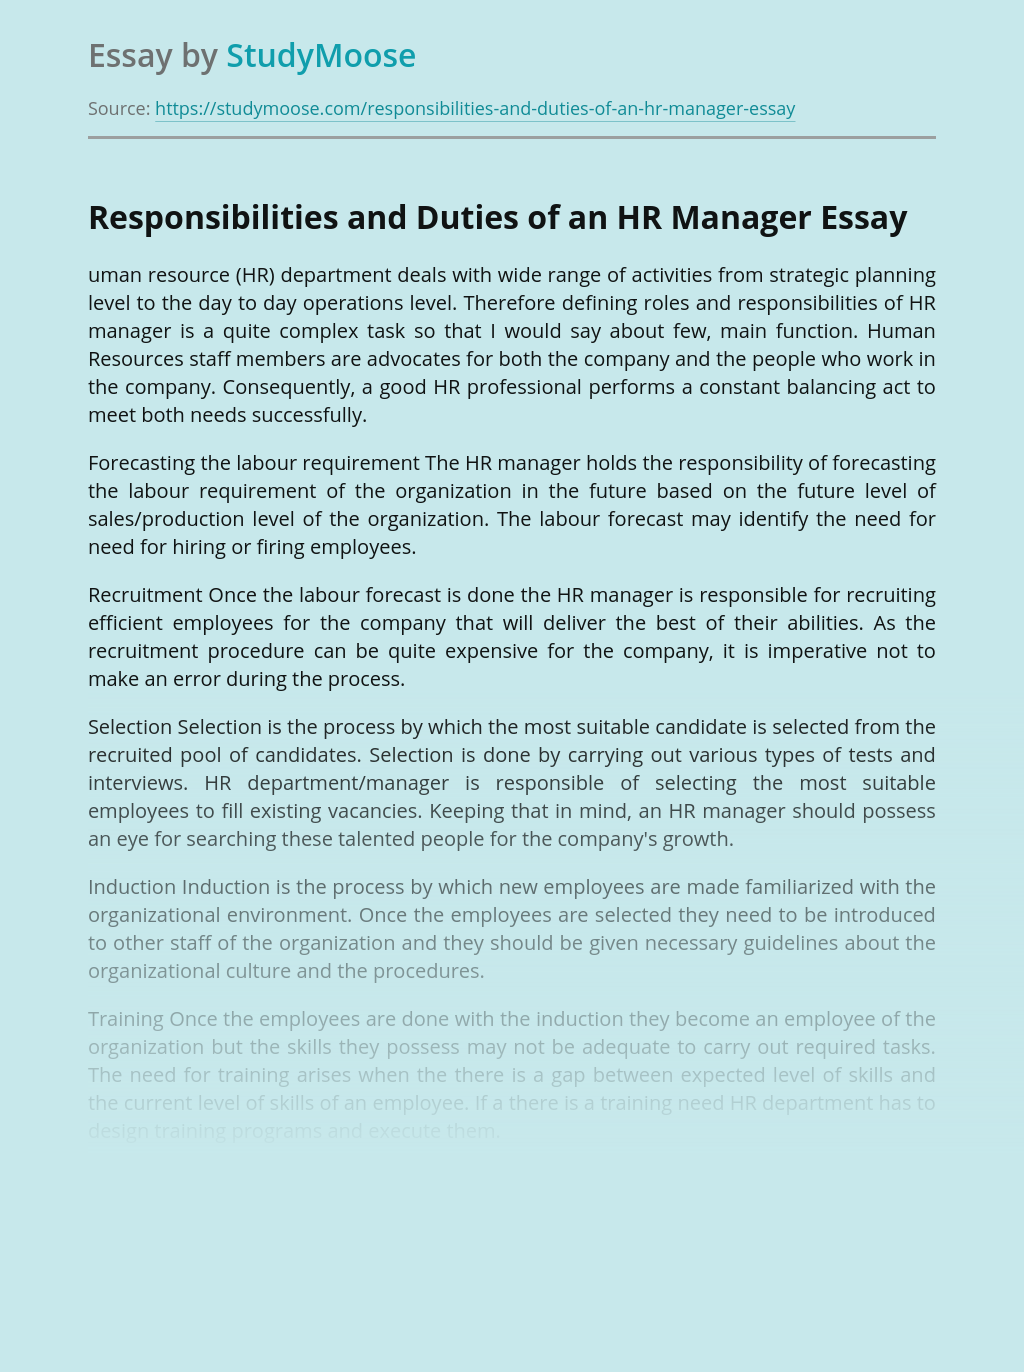 Responsibilities and Duties of an HR Manager